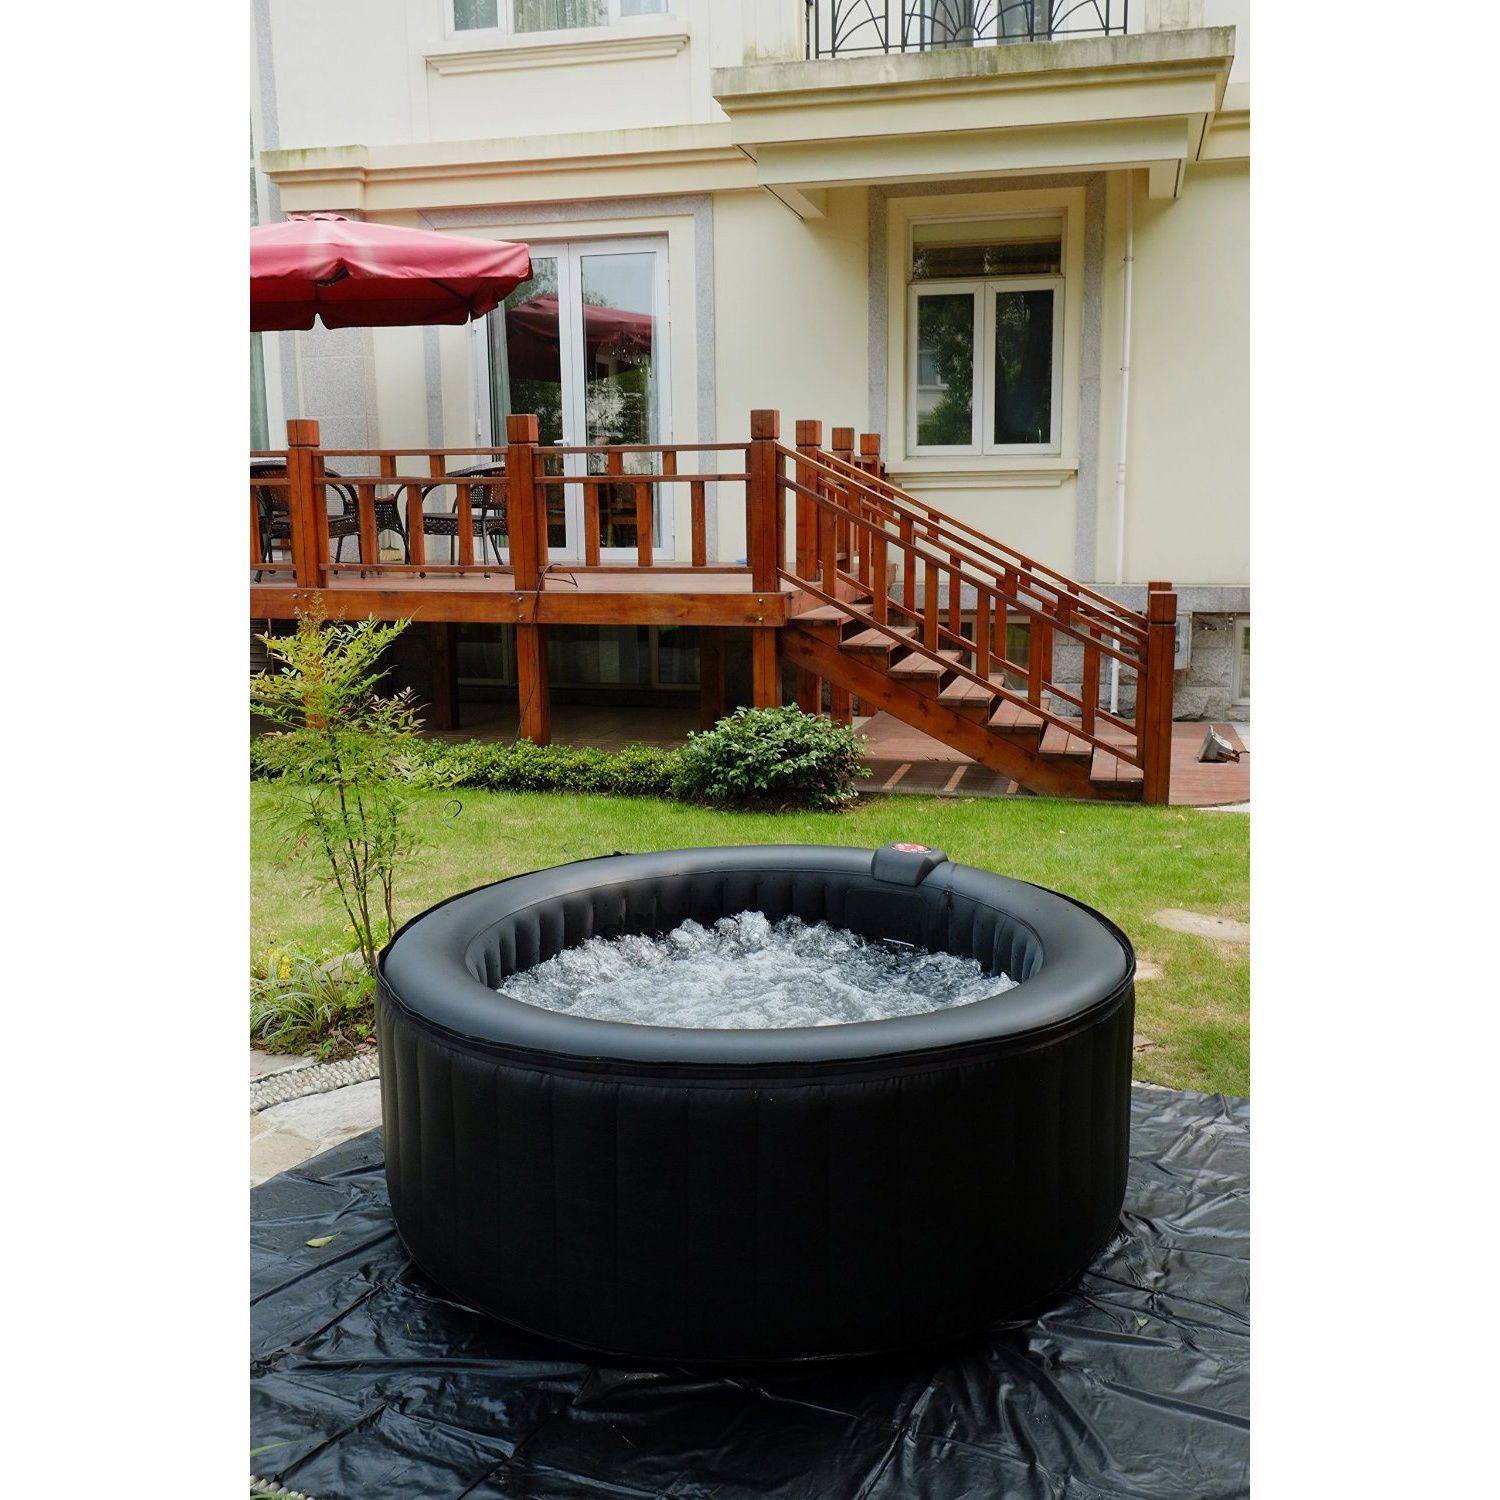 NEW GALLON INFLATABLE 8 PERSON HOT TUB Uncle Wieners Wholesale